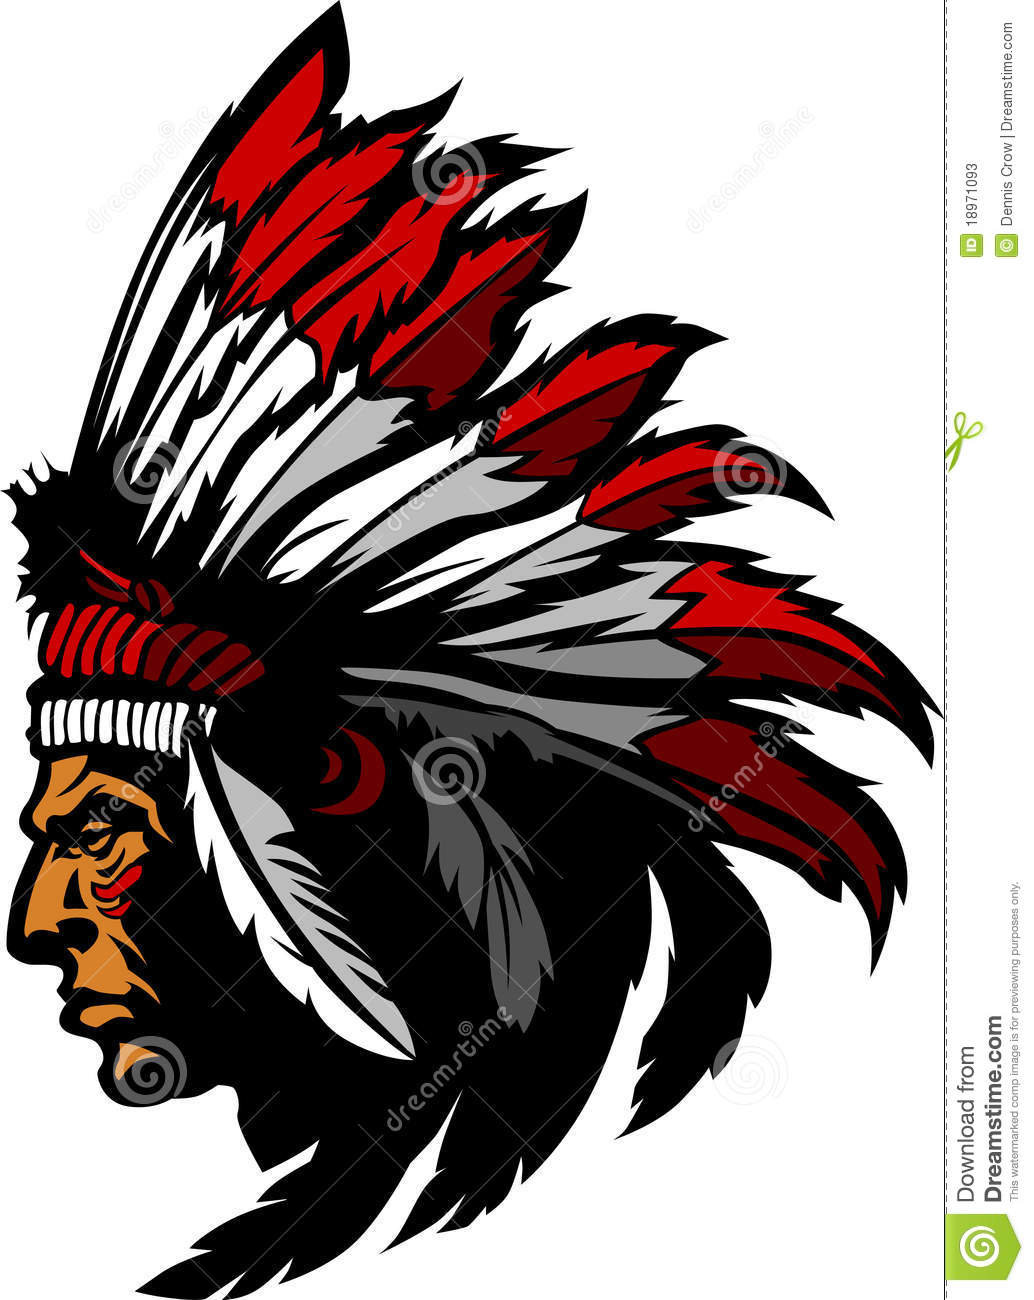 indian chief mascot vector logo stock vector illustration of rh dreamstime com Indian Mascots and Logos Indian Chief Head Logo